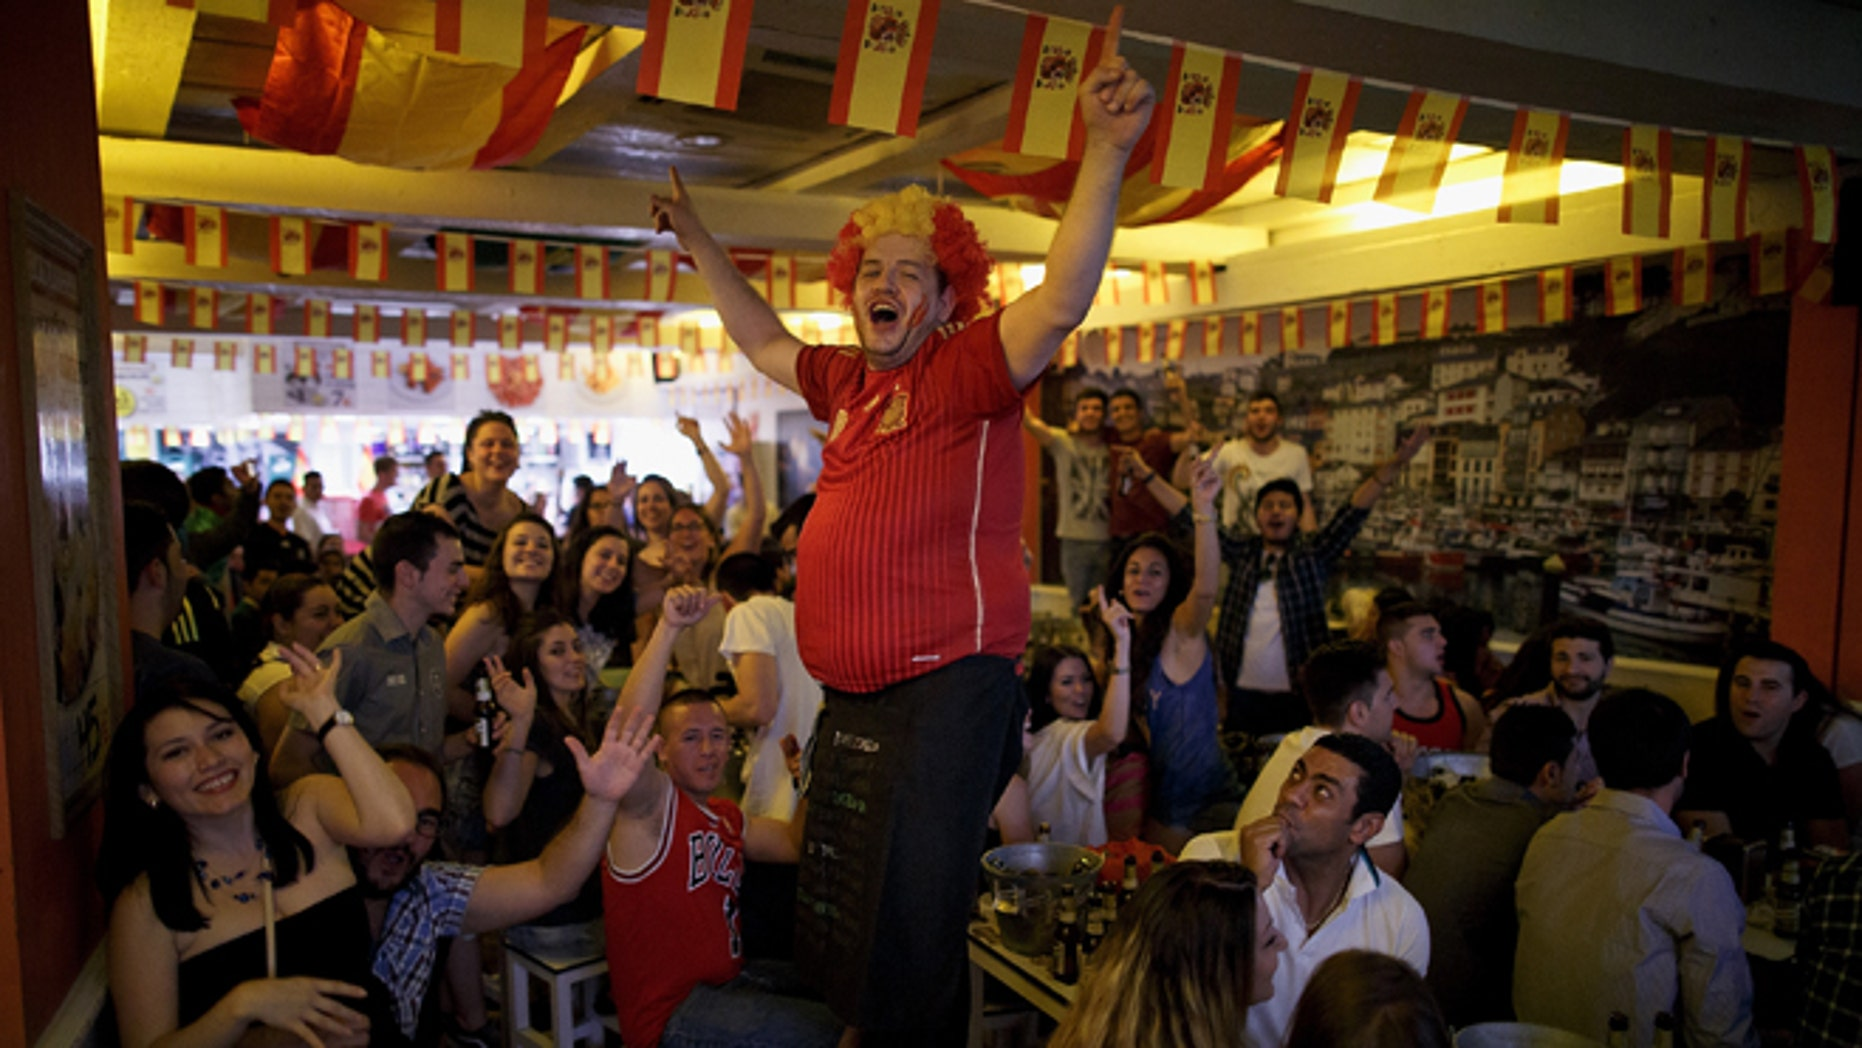 MADRID, SPAIN - JUNE 13:  A waiter cheers up Spanish soccer fans watching their team playing against the Netherlands in a Madrid tavern during Spain's first FIFA World Cup match on June 13, 2014 in Madrid, Spain. Spain are the current Champions after they won 2010 World Cup final against Holland, but today they lost the match 5-1.  (Photo by Pablo Blazquez Dominguez/Getty Images)